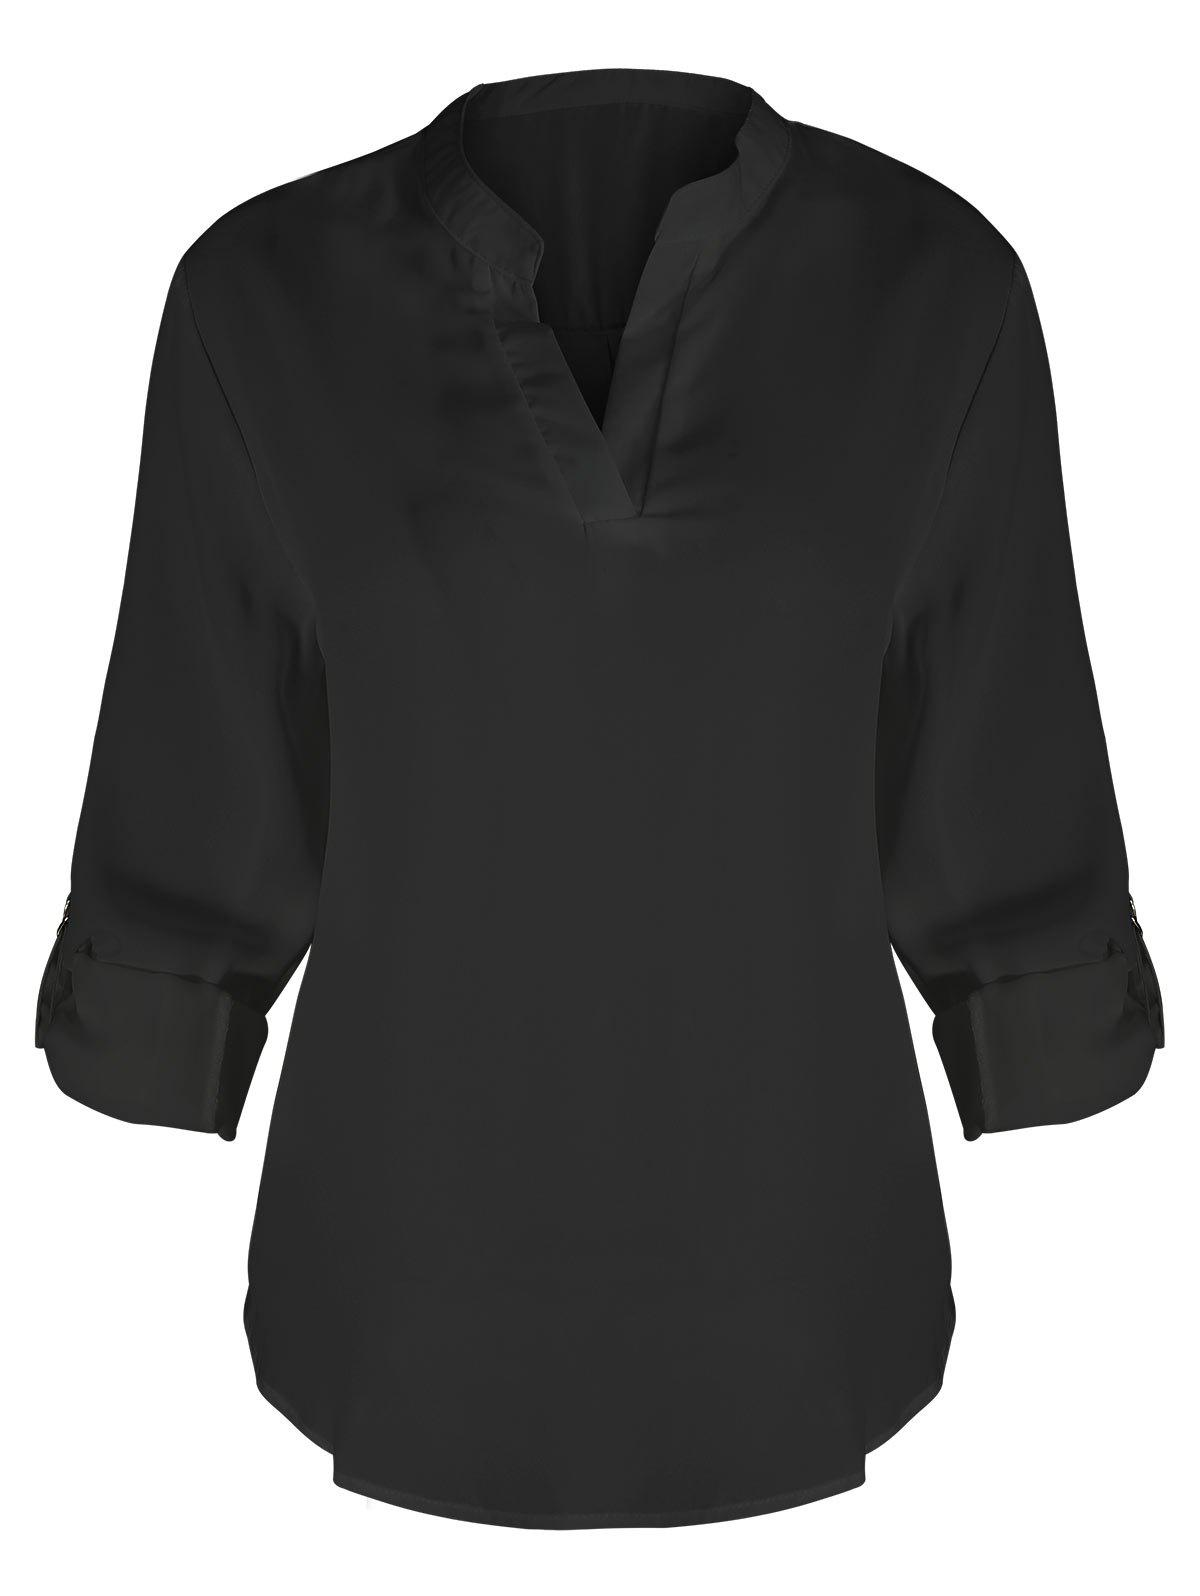 Plus Size V Neck BlouseWOMEN<br><br>Size: 2XL; Color: BLACK; Material: Polyester; Shirt Length: Regular; Sleeve Length: Three Quarter; Collar: V-Neck; Style: Fashion; Season: Fall; Pattern Type: Solid; Weight: 0.3000kg; Package Contents: 1 x Blouse;